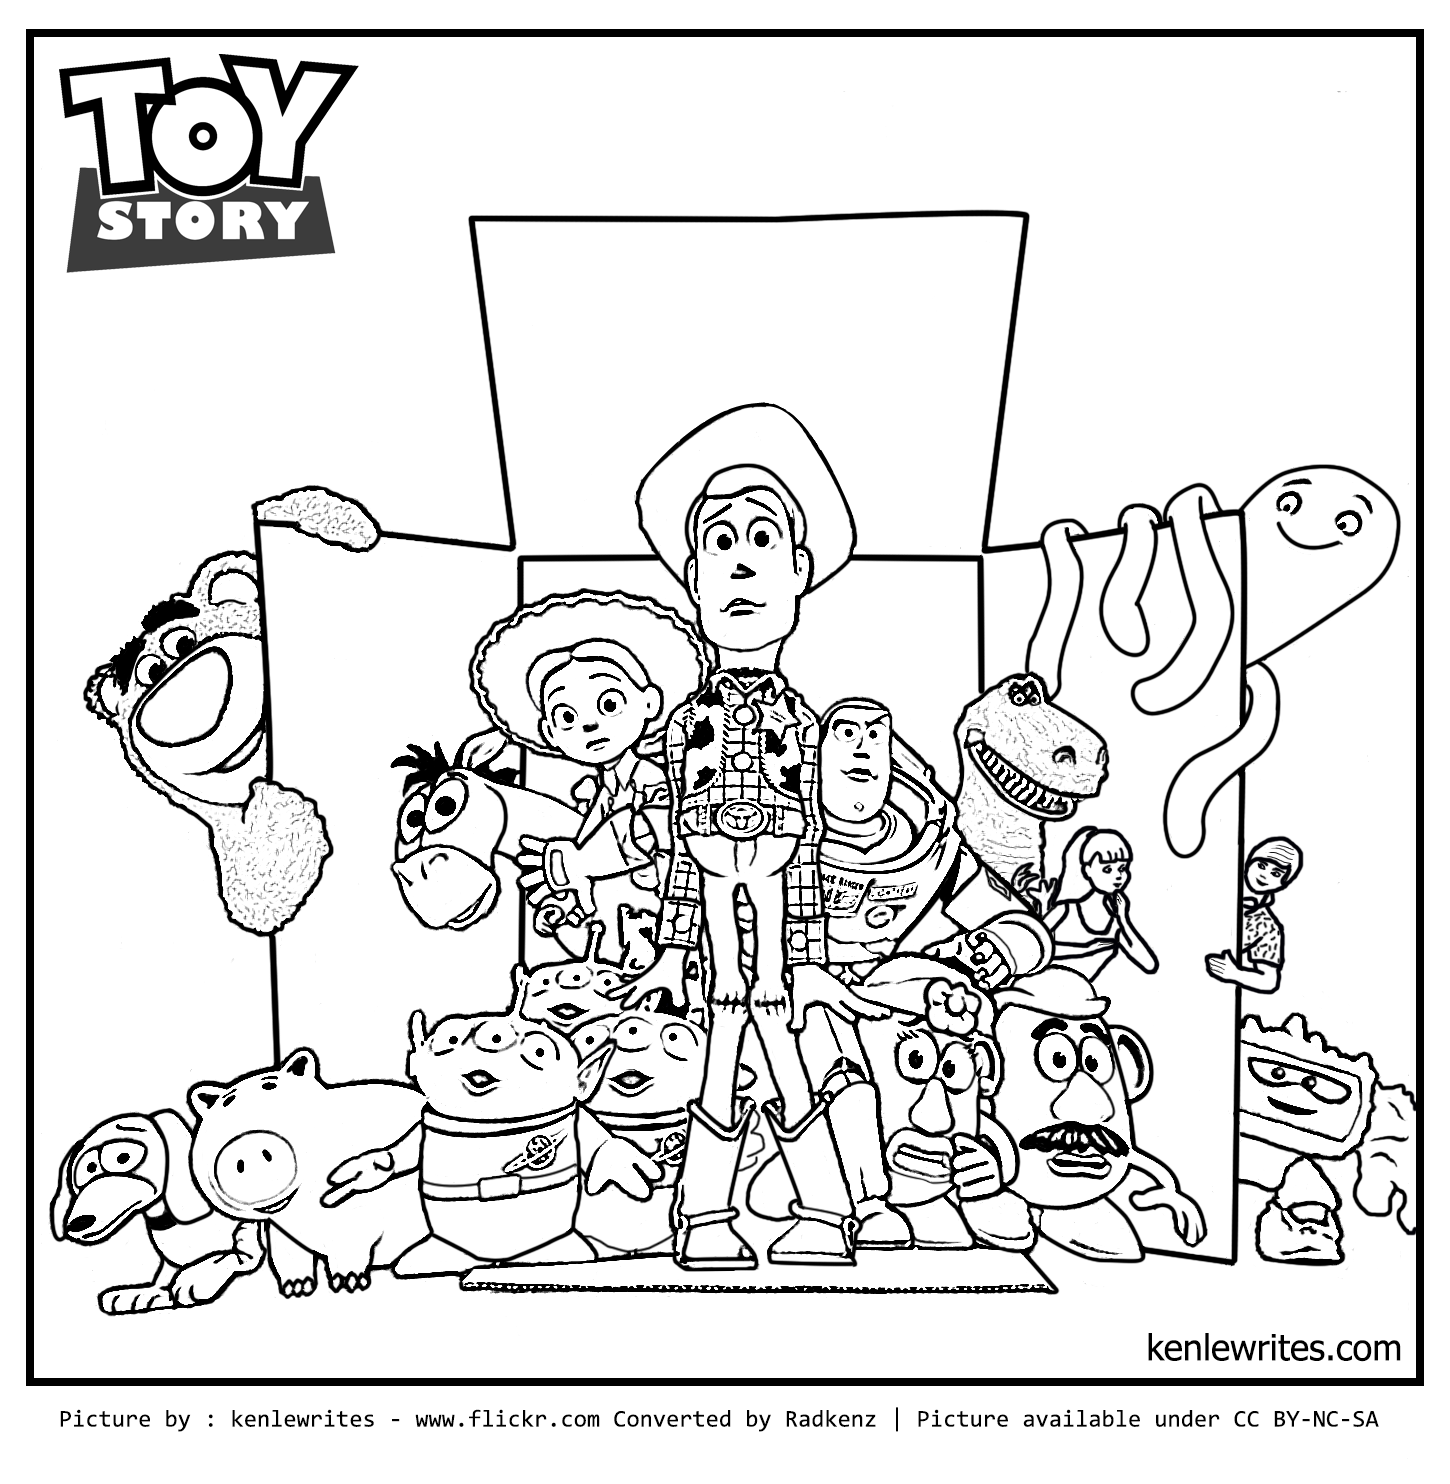 Imagens do toy story para pintar 4 fichas e atividades for Toy story 3 jessie coloring pages